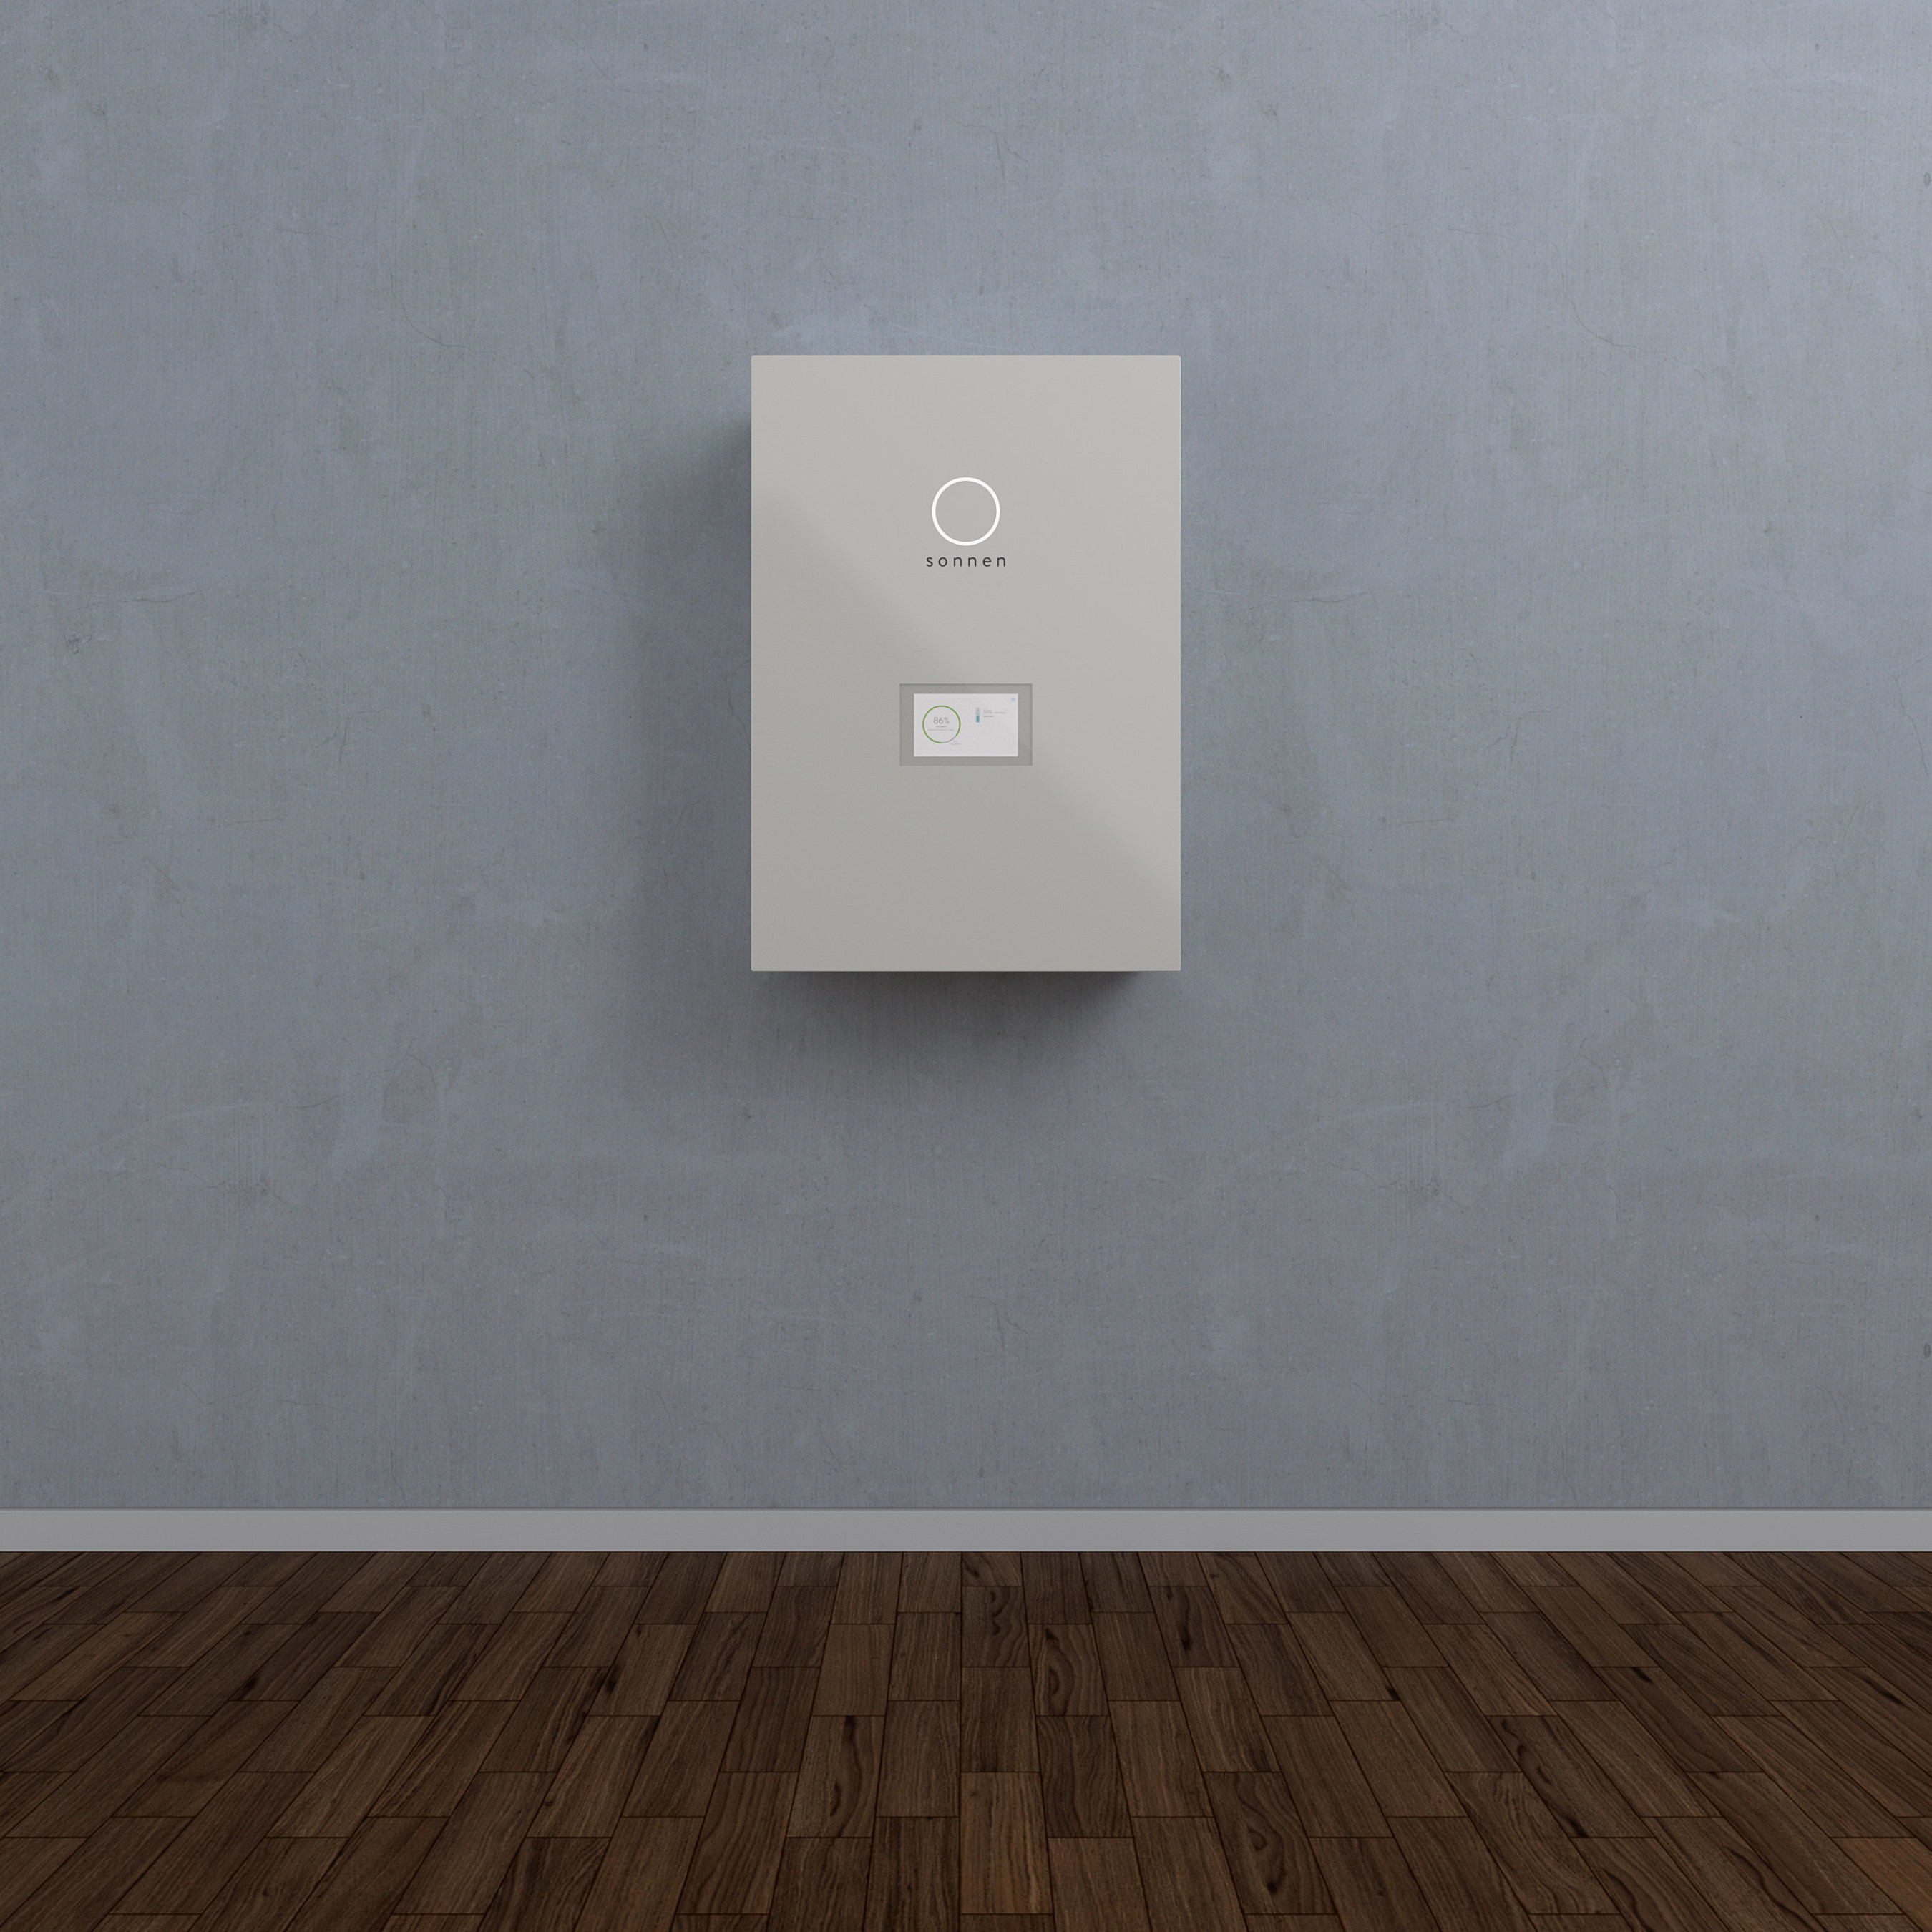 sonnen's latest smart energy management solution - the sonnenBatterie eco compact - scales from 4kWh to 16kWh and increases solar self-consumption for residential customers.